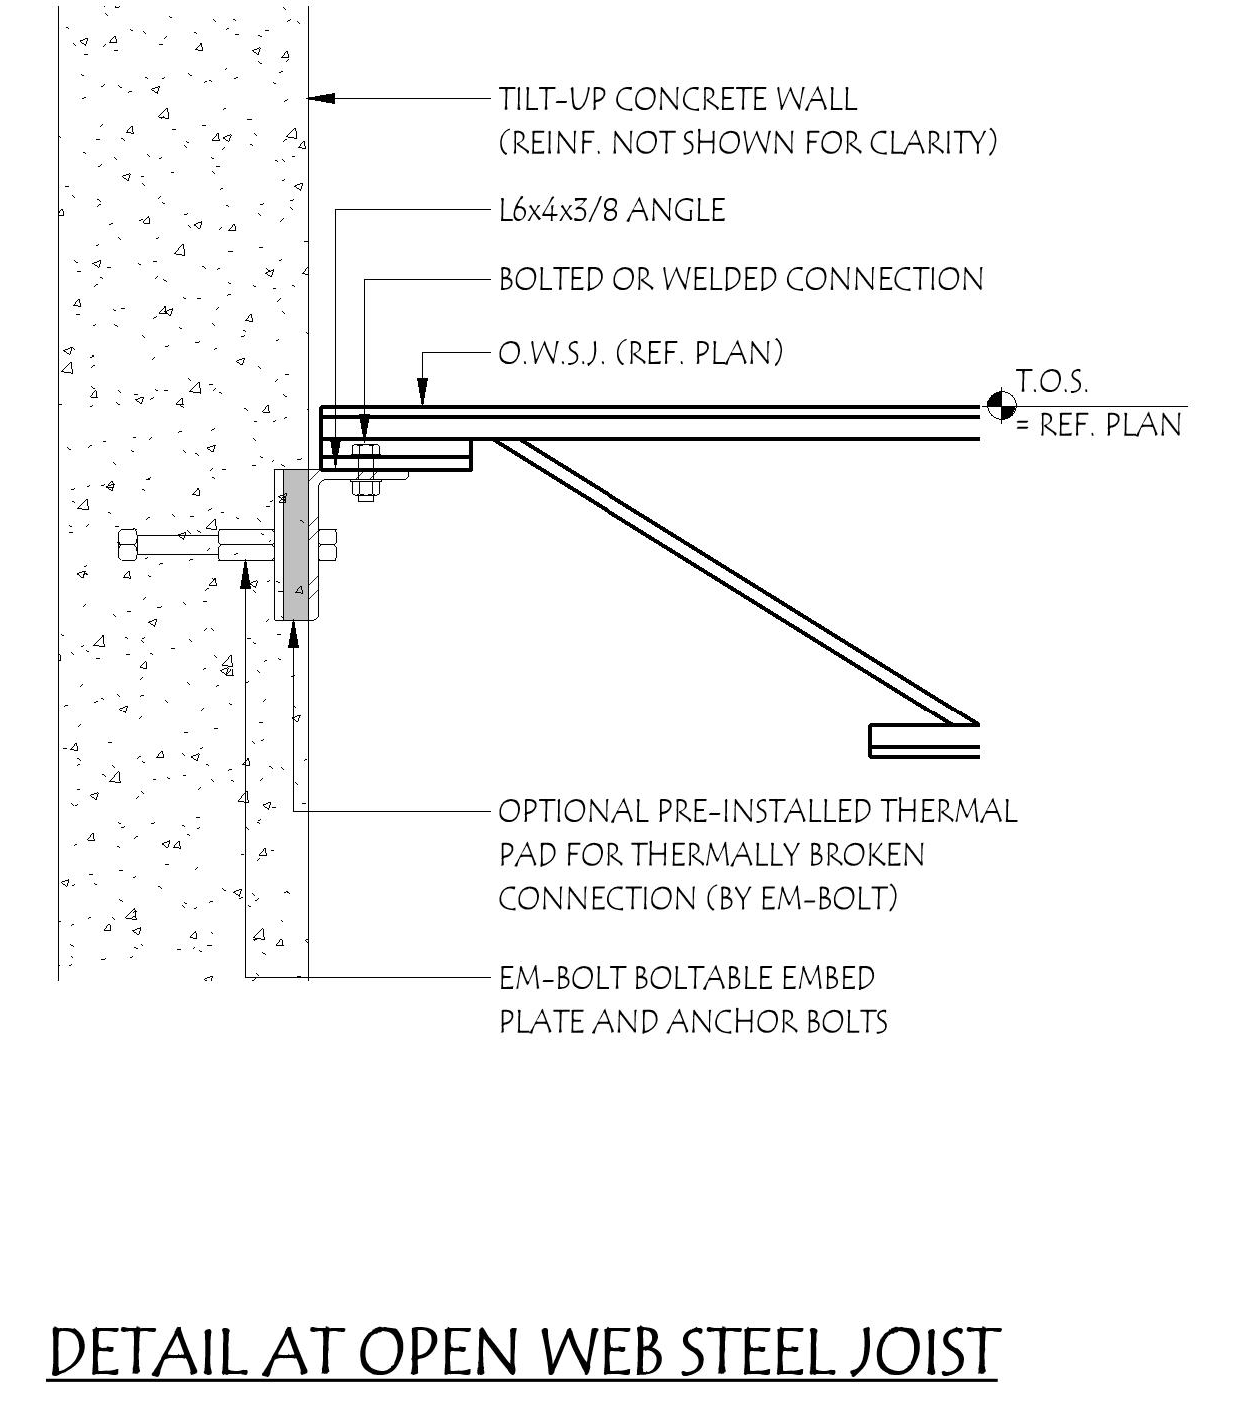 Tilt-up Construction Wall Embed Plate Detail at Open Web Steel Joist